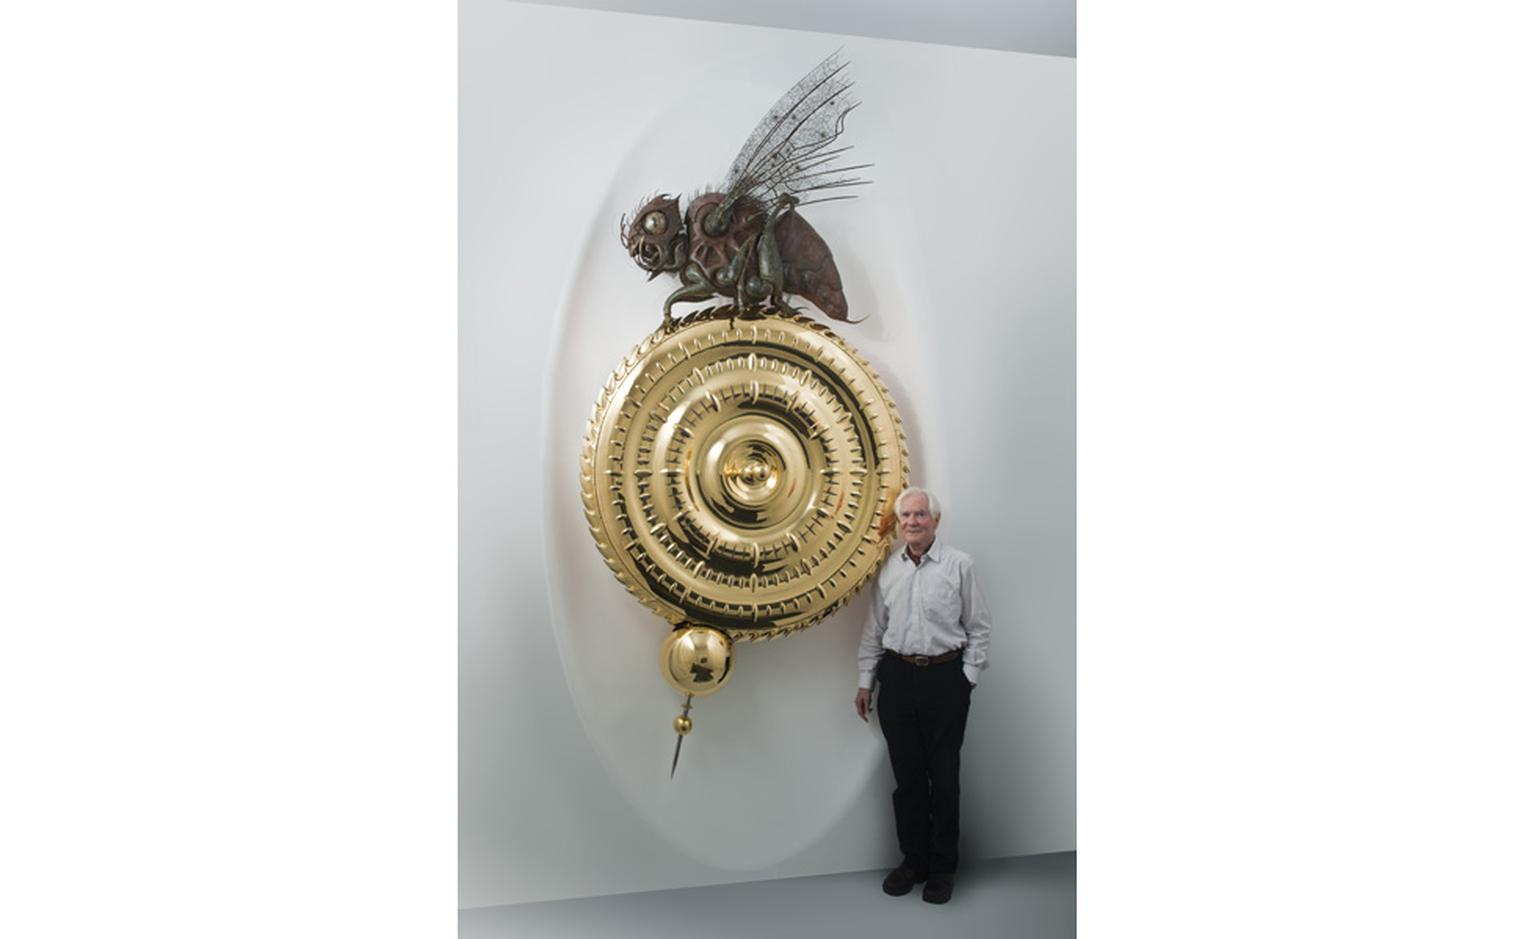 Inventor John C. Taylor with his Midsummer Chronophage that will be on show at SalonQP 2011.